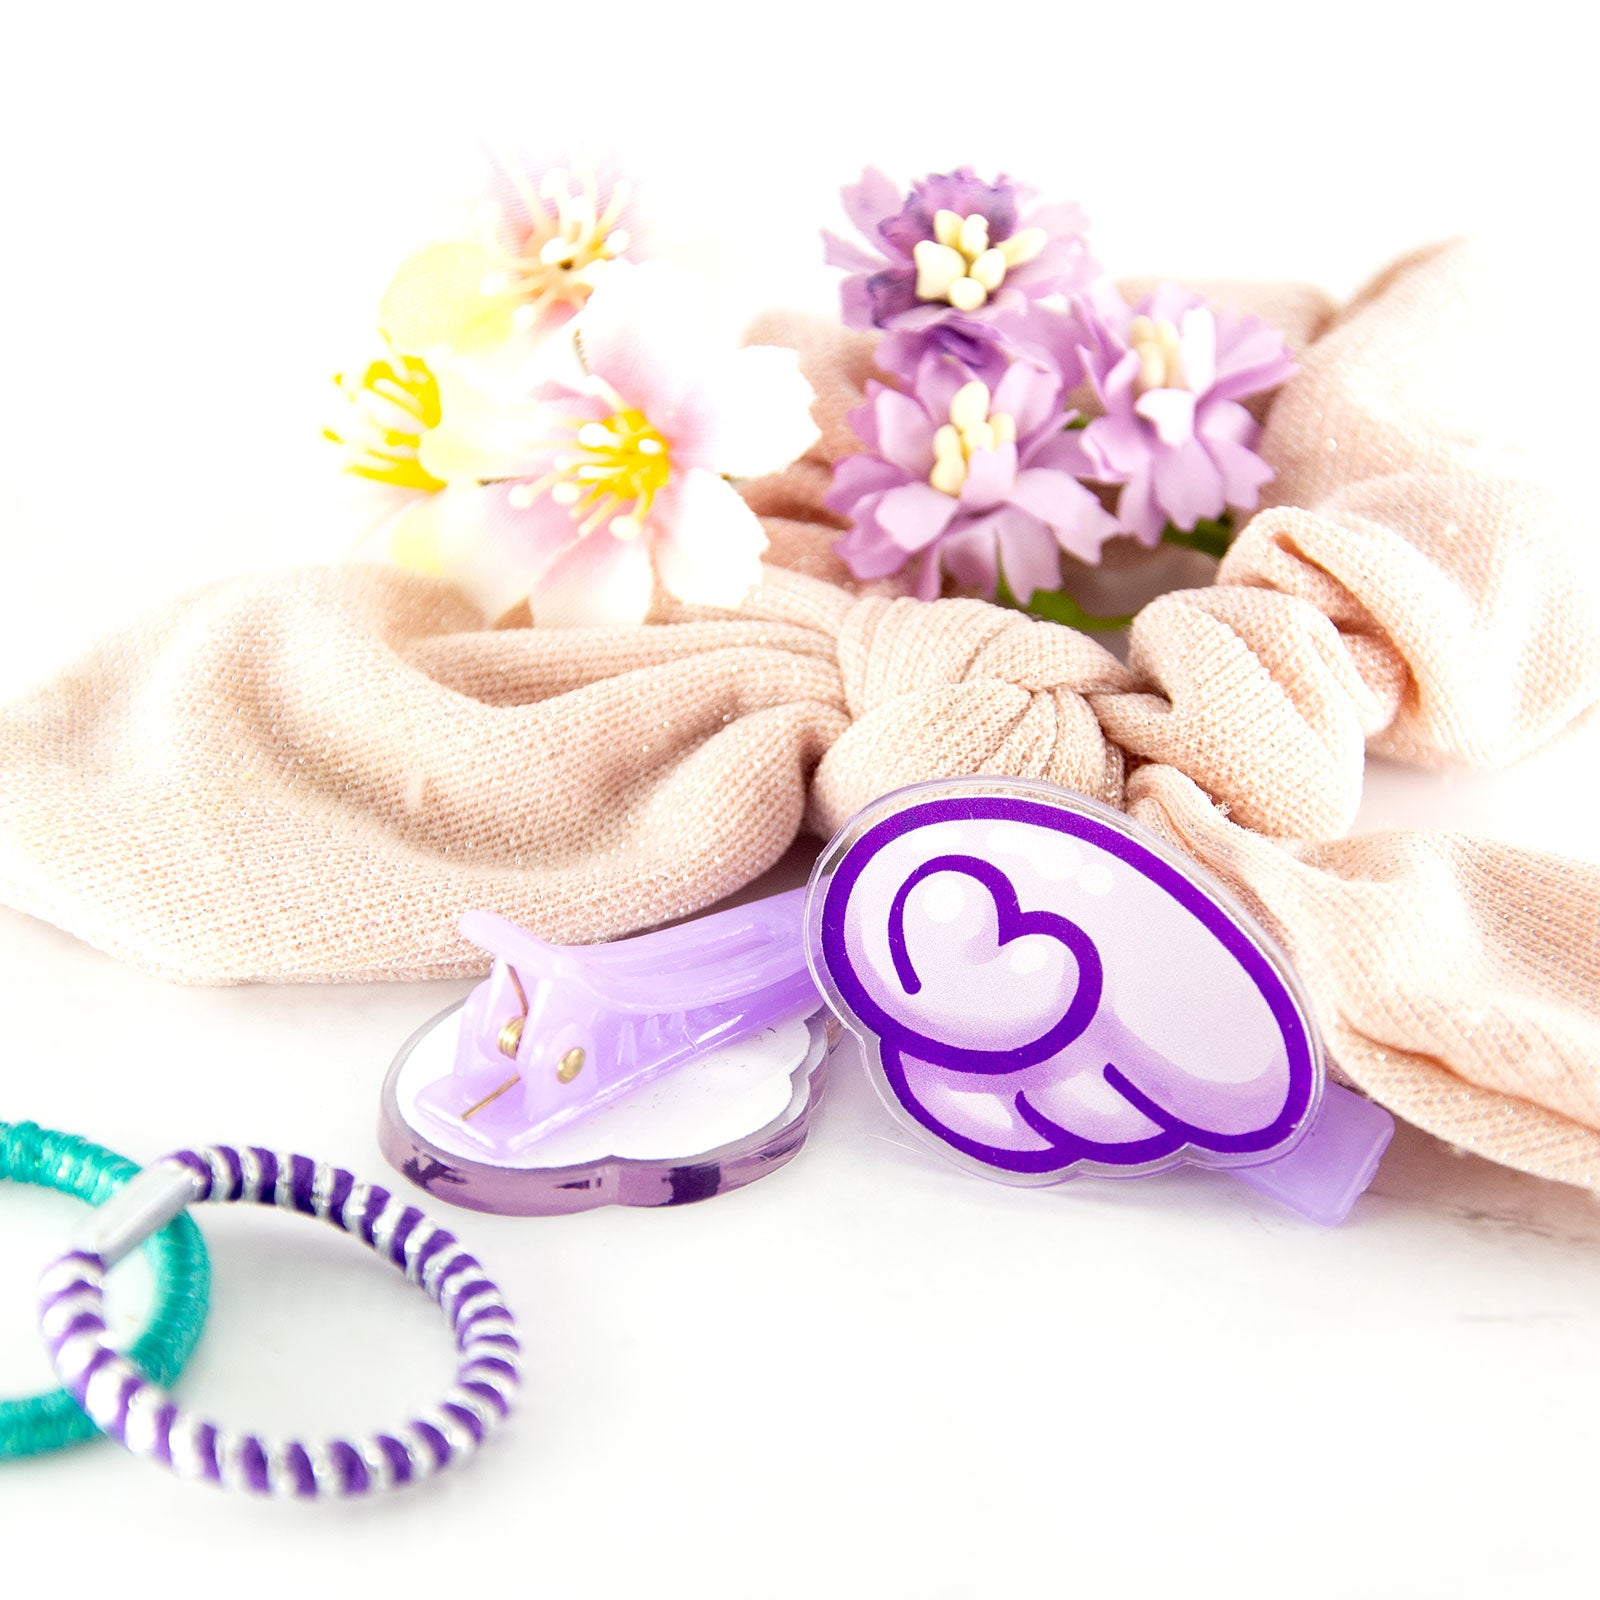 Angel wing hair clip set - kawaii accessories by MadModesty